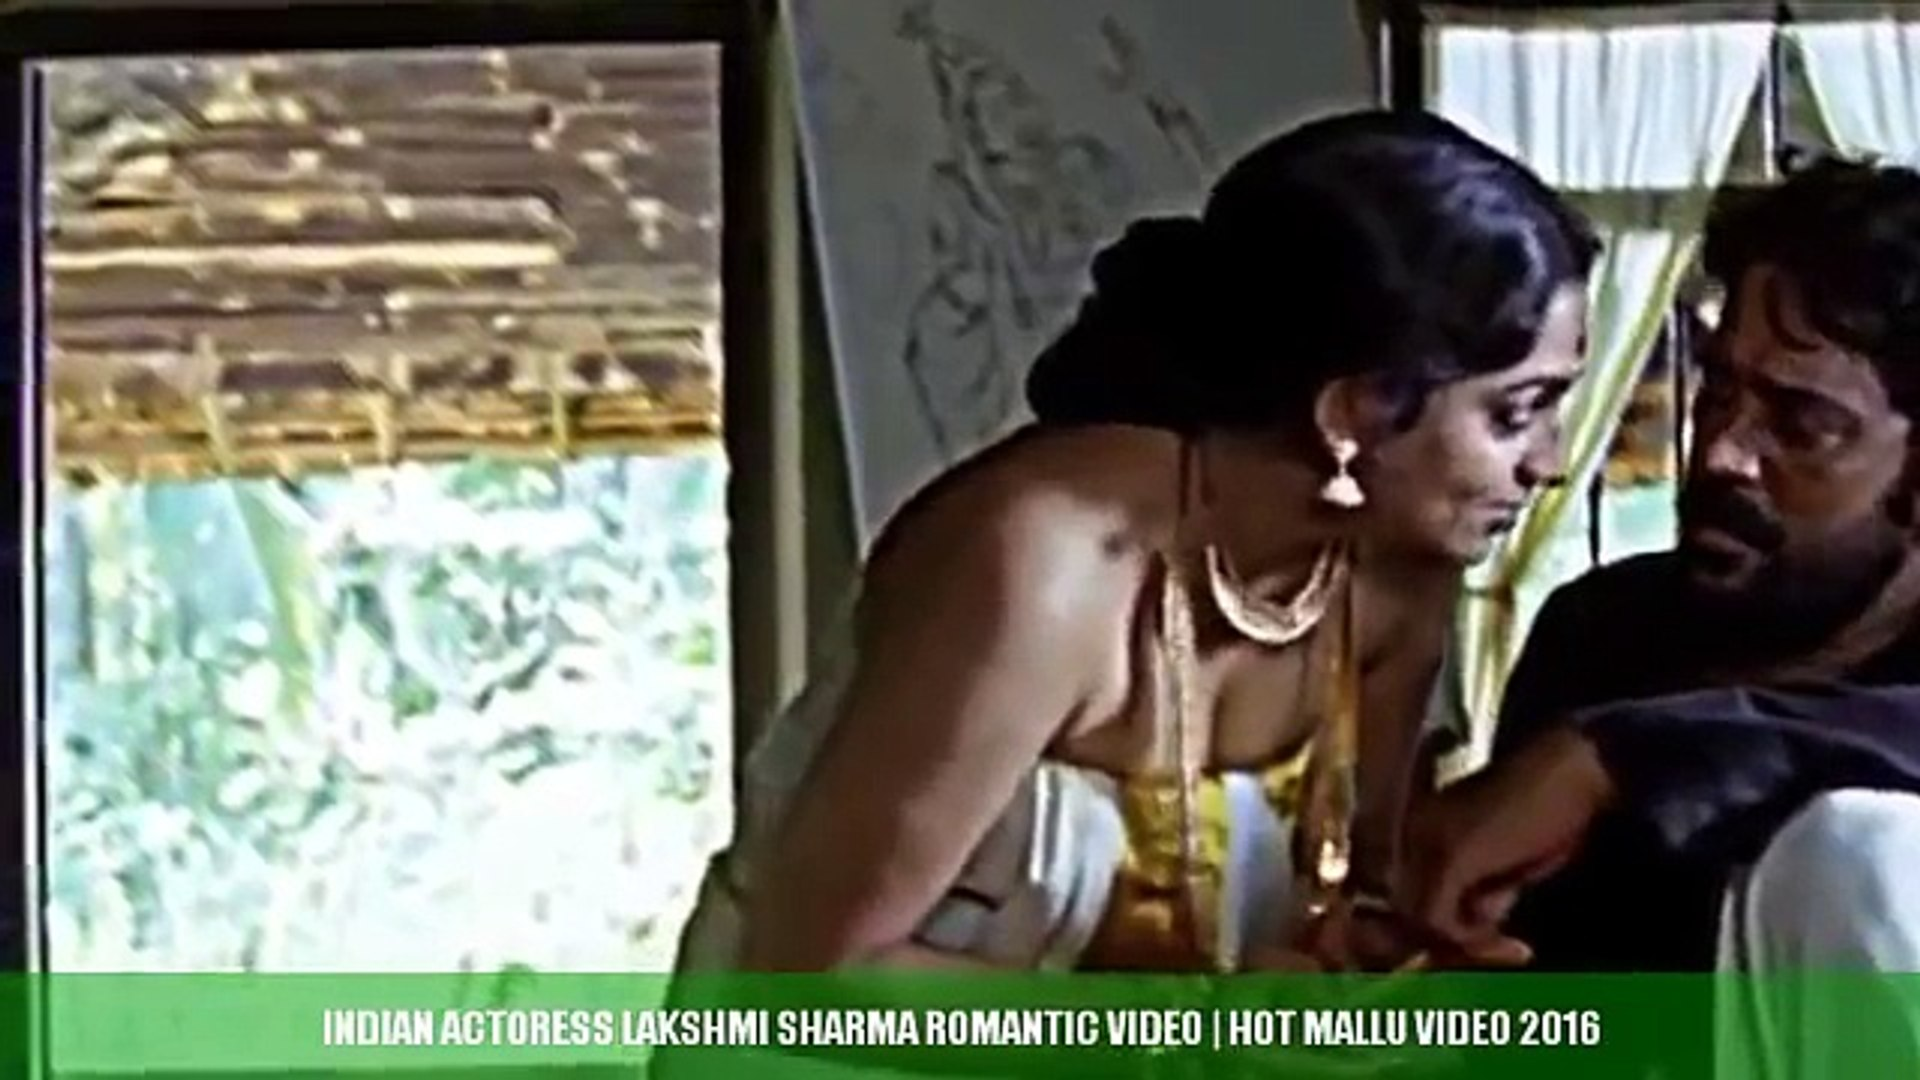 Lakshmi Sharma Romance | Mallu Girl Attacked by Boyfriend | Tamil Movie Hot Scene HD